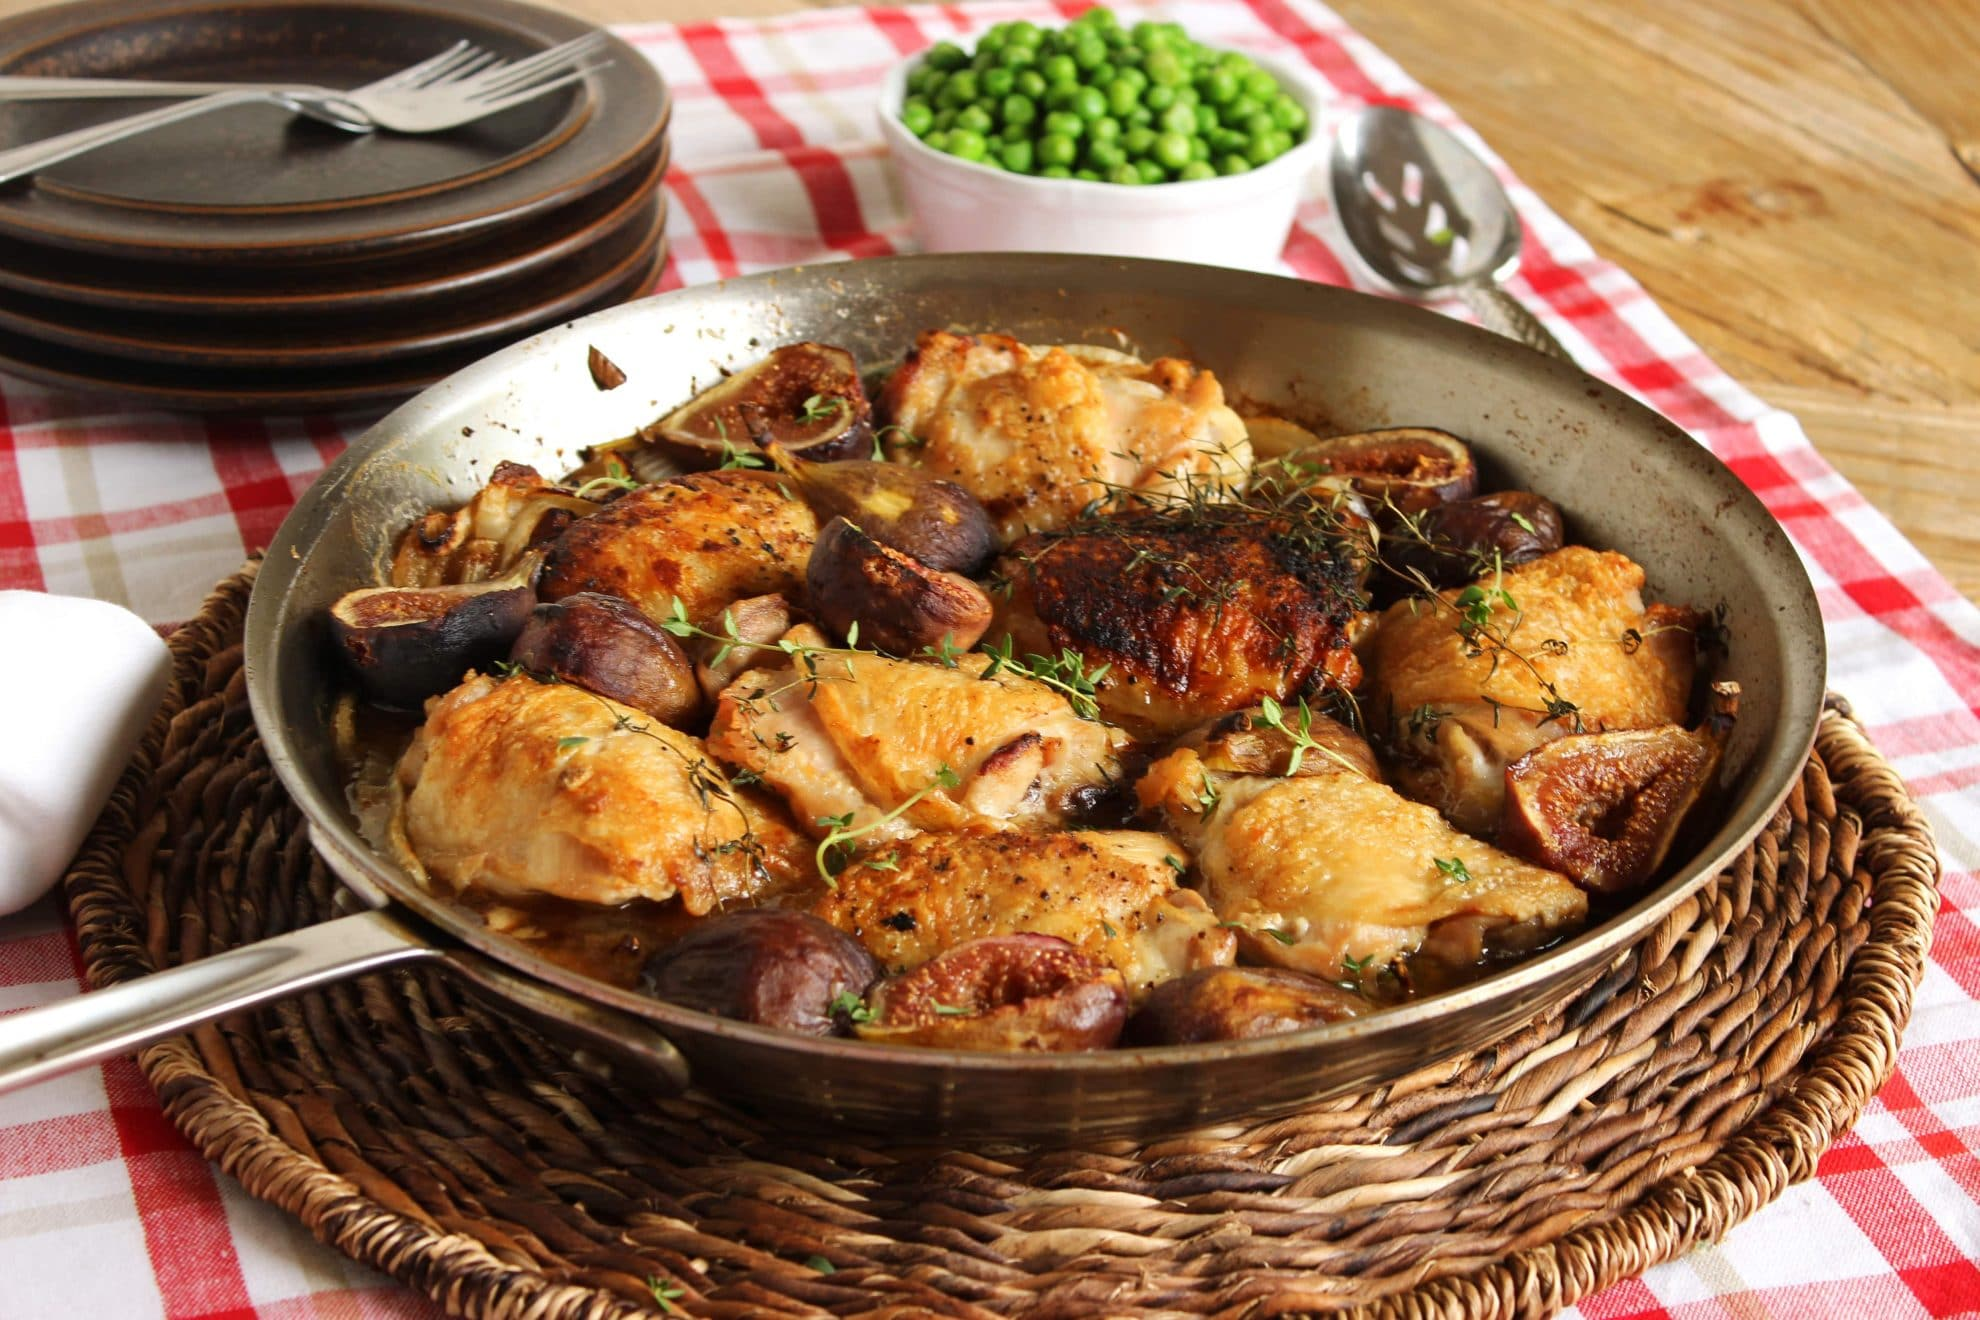 Pan Roasted Crispy Chicken Thighs with Figs